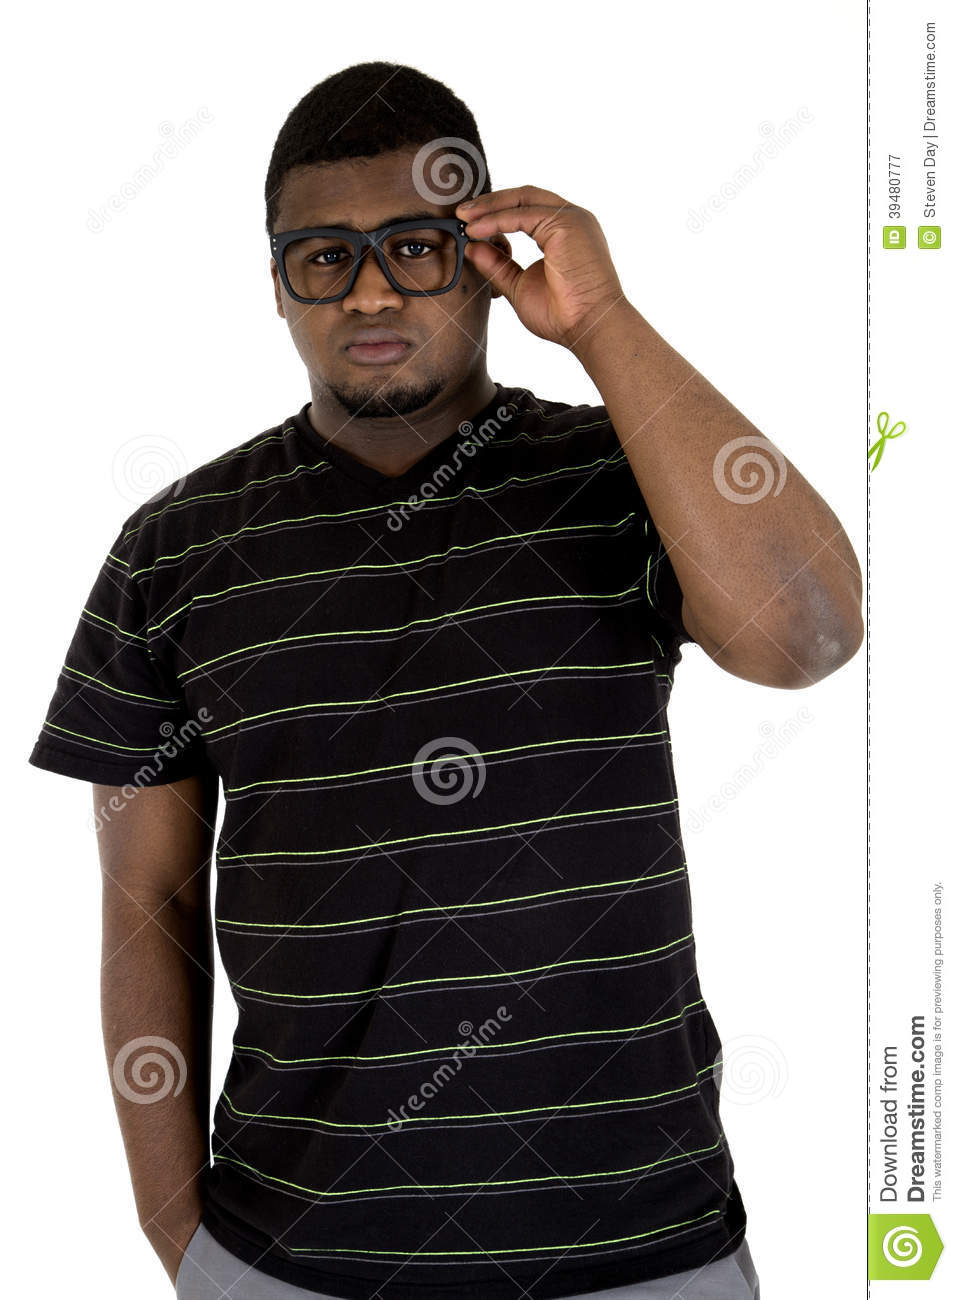 Black Male Model With A Casual Look Wearing Black Glasses